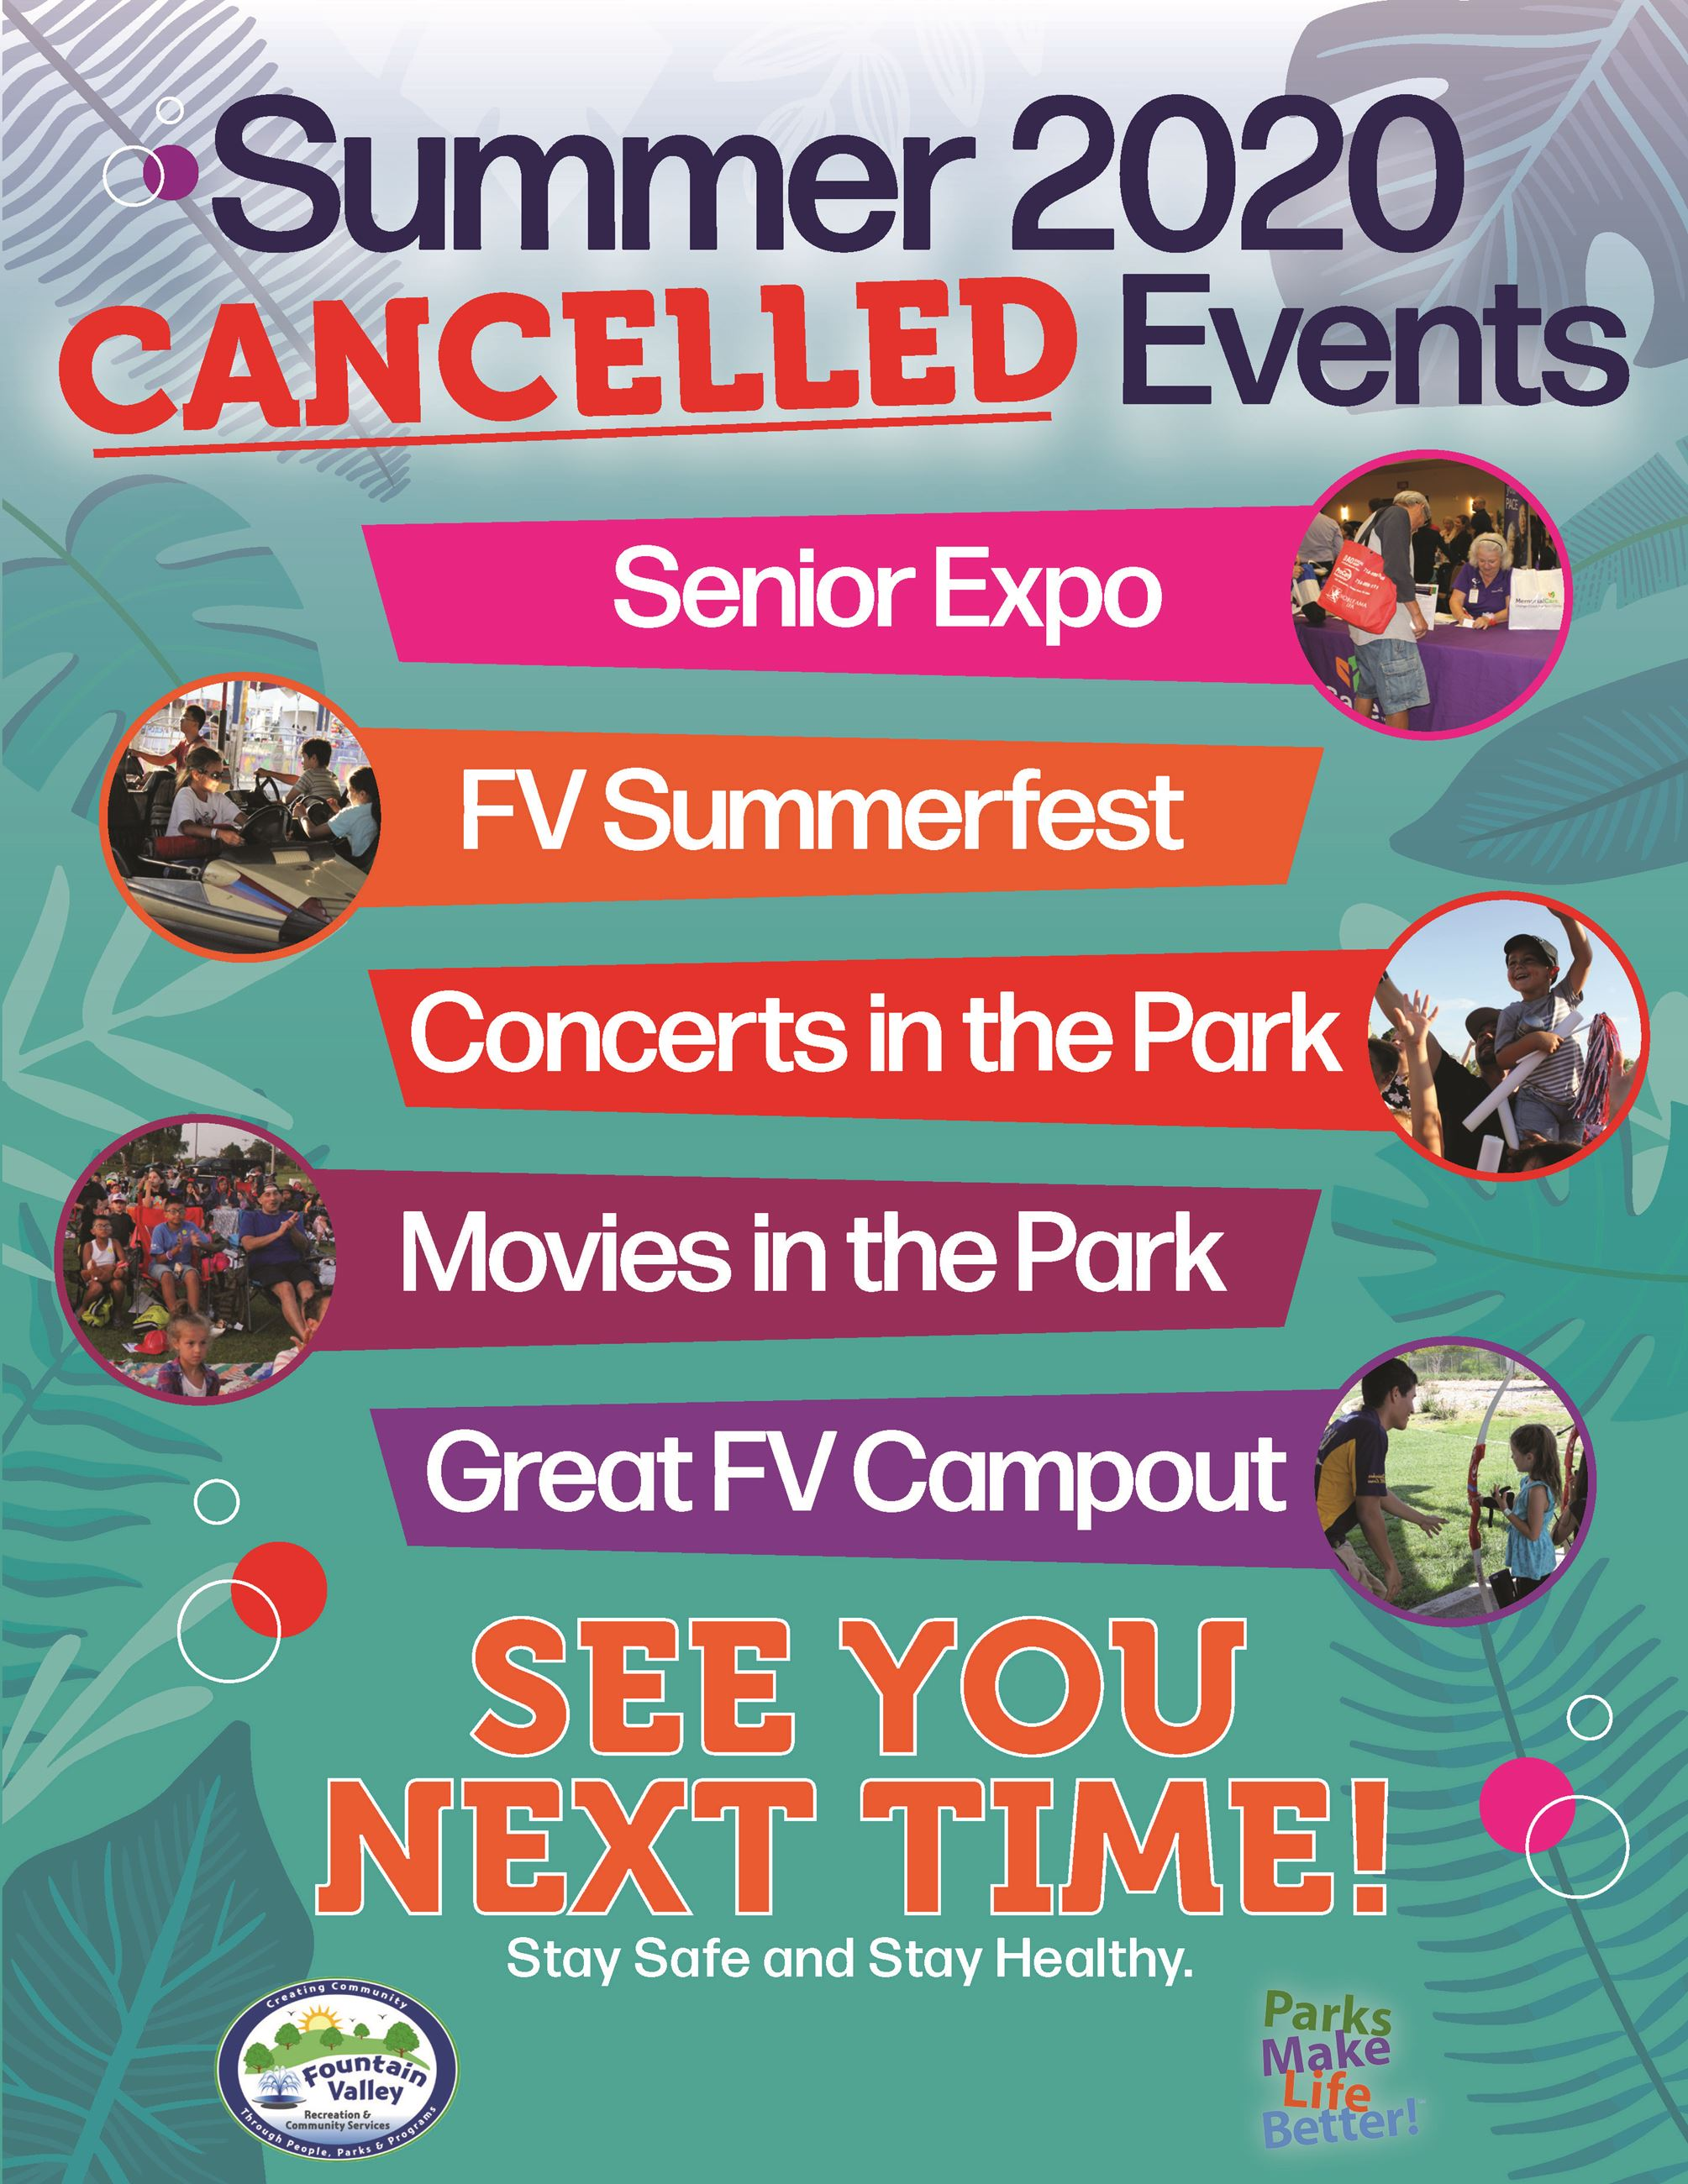 Cancelled Summer Events for 2020